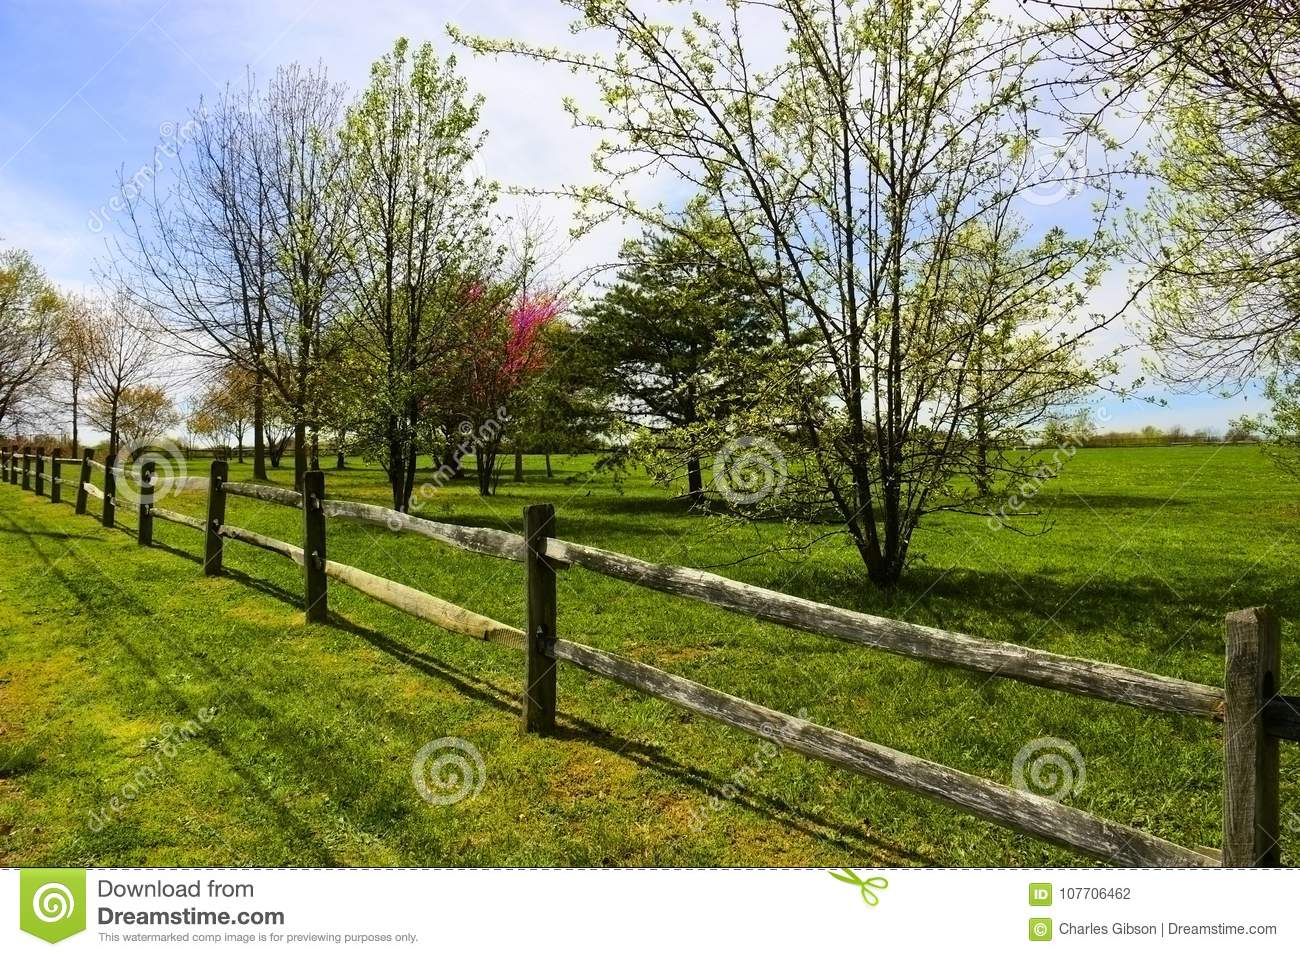 Wooden rail fence stock photo  Image of rails, borderline - 107706462